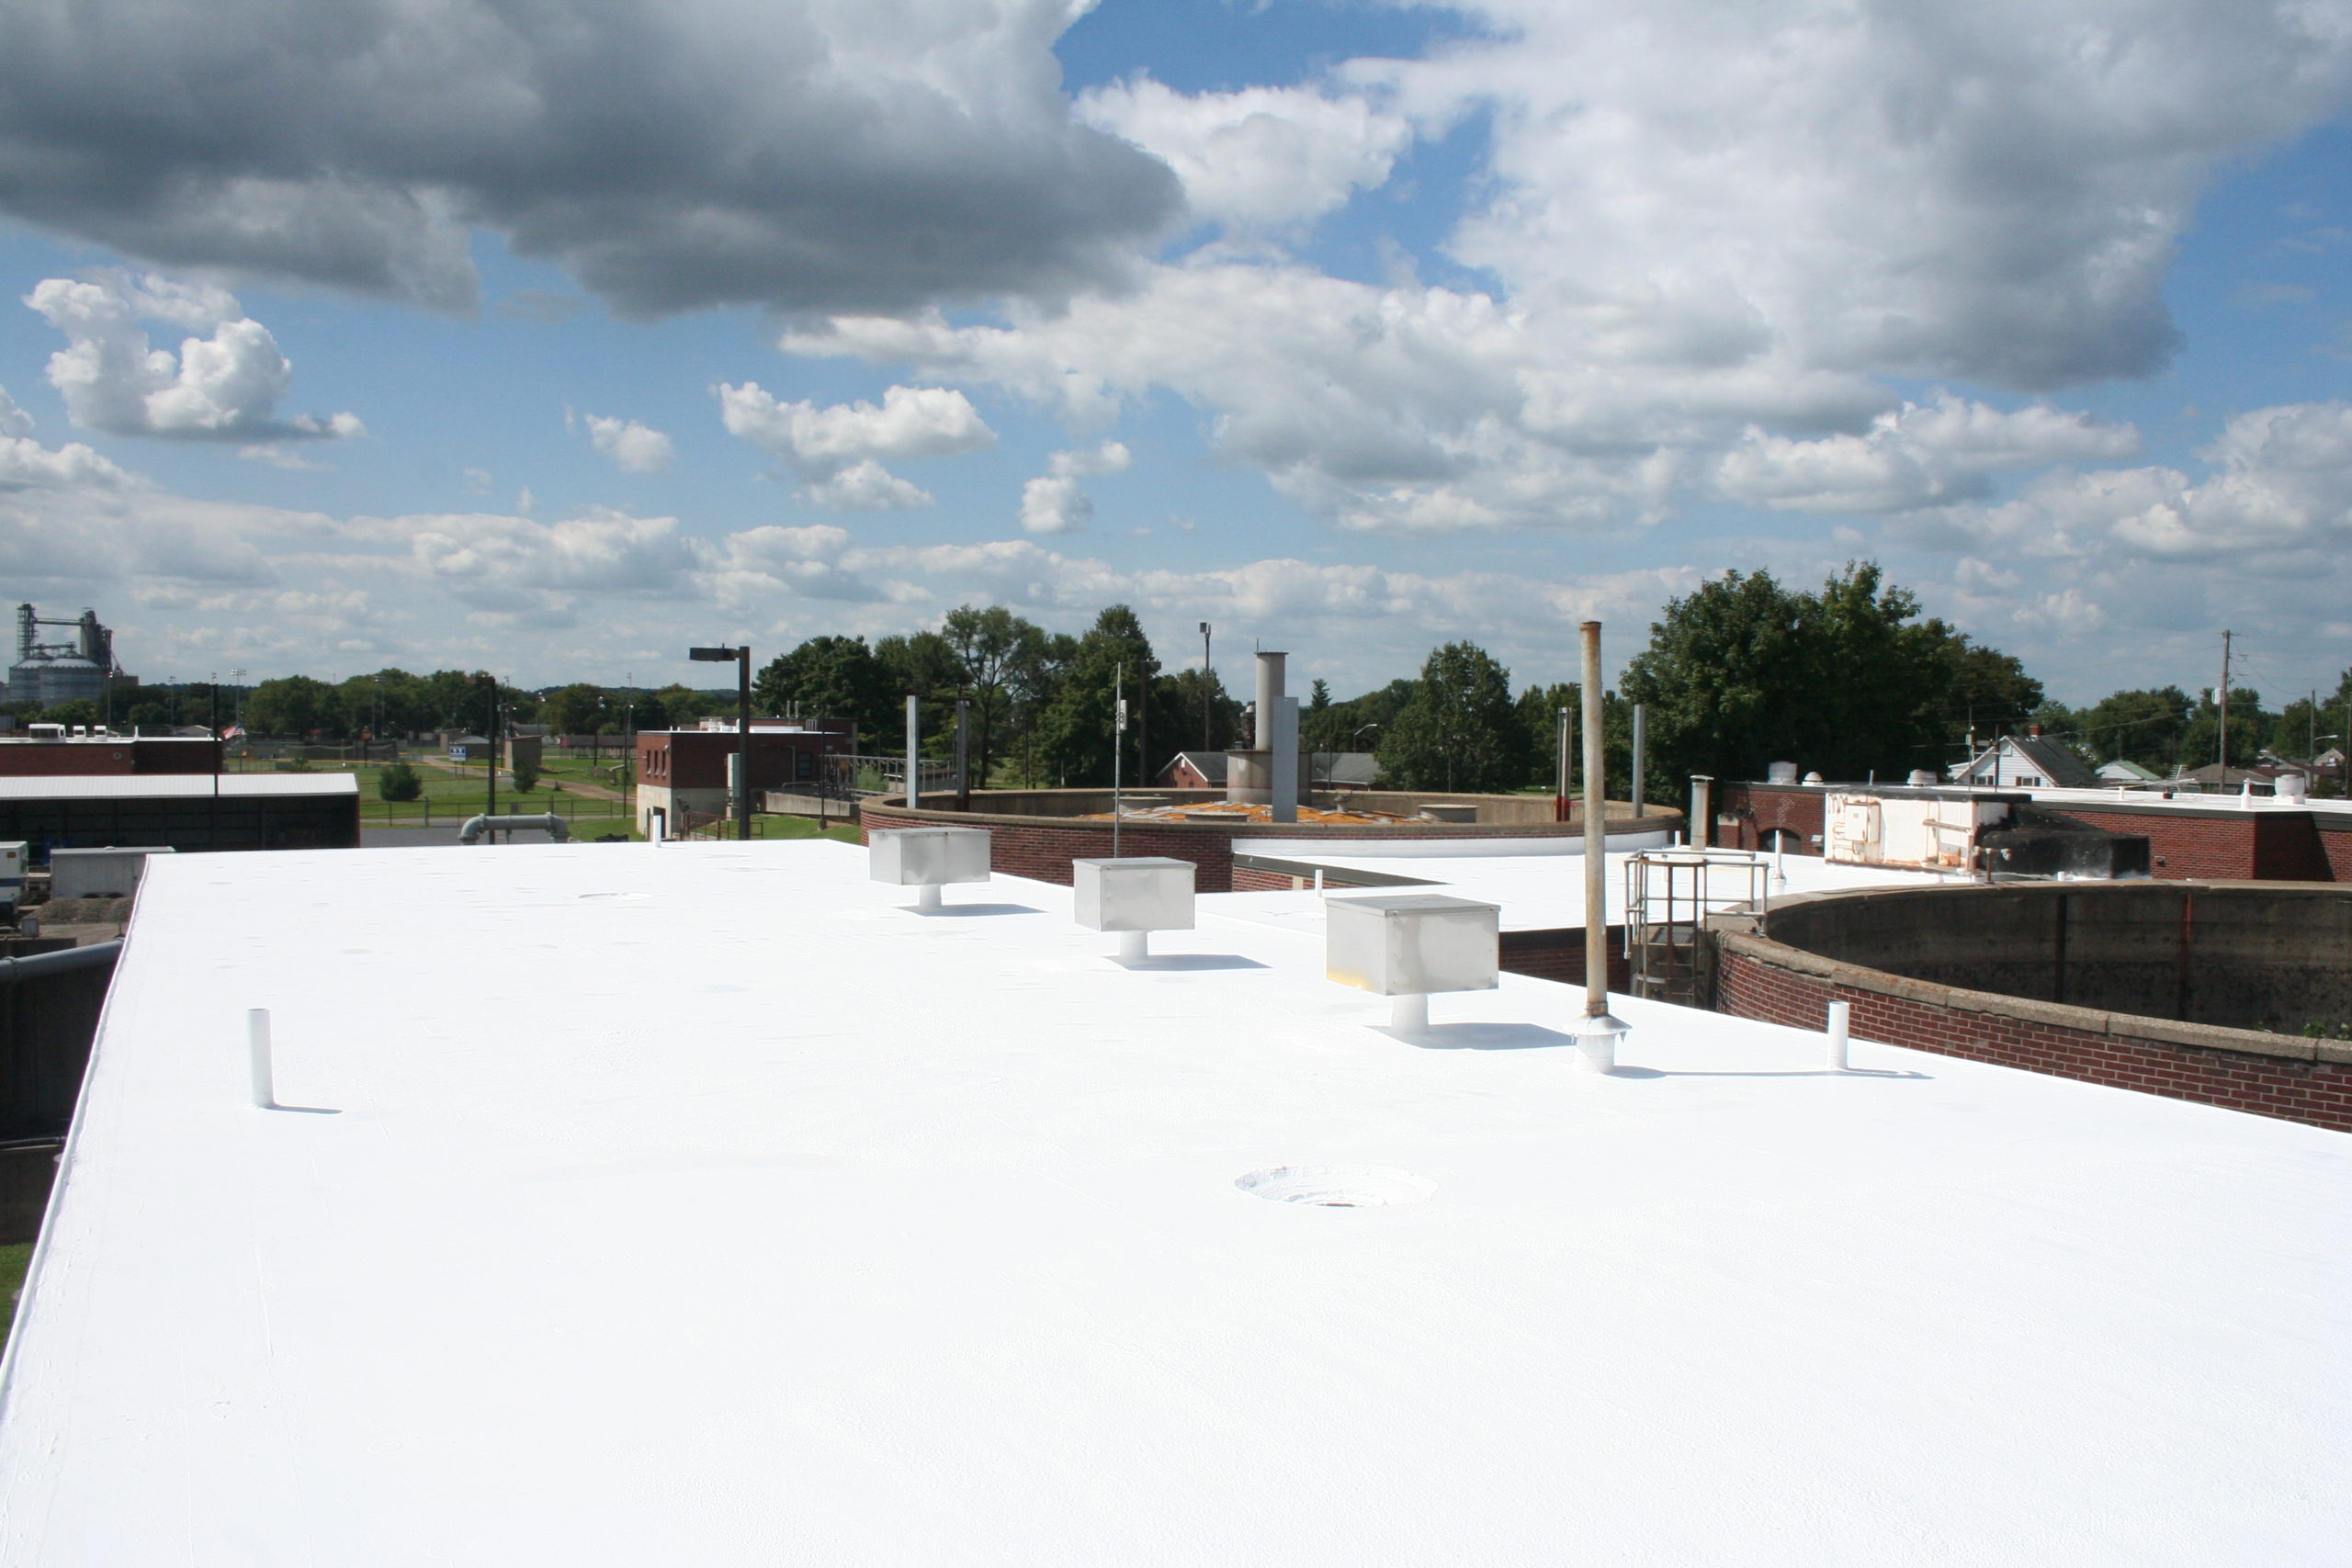 Our membrane roofing system at work!